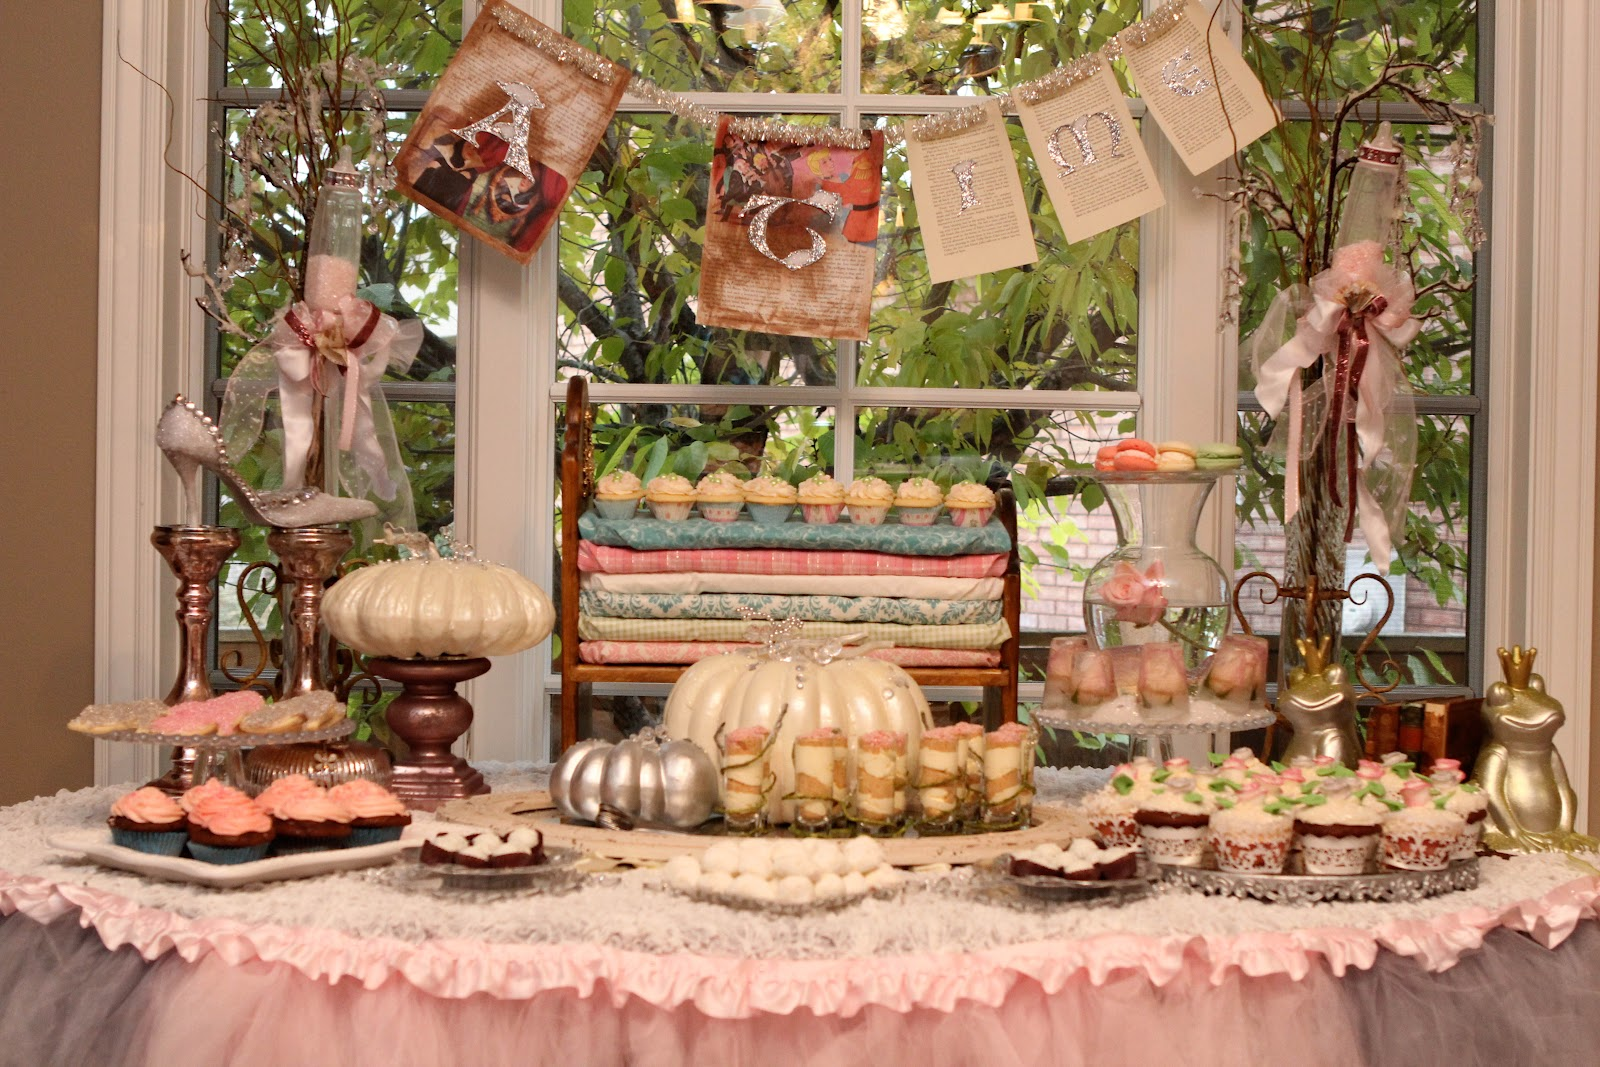 Easy and Simple Baby Shower Drink Ideas - Wine or Not?